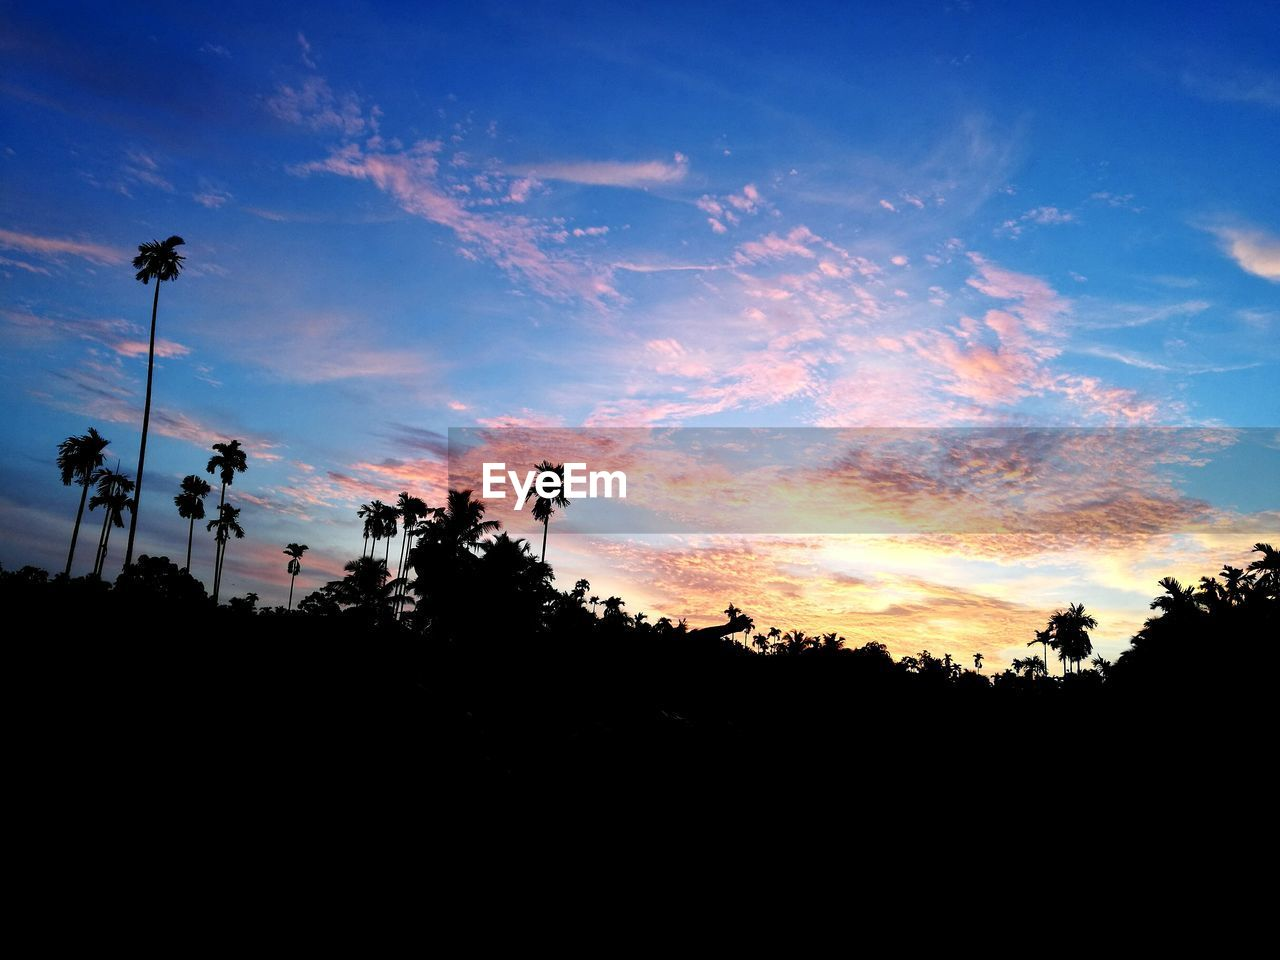 silhouette, sunset, tree, sky, nature, beauty in nature, tranquility, outdoors, scenics, tranquil scene, low angle view, no people, palm tree, growth, day